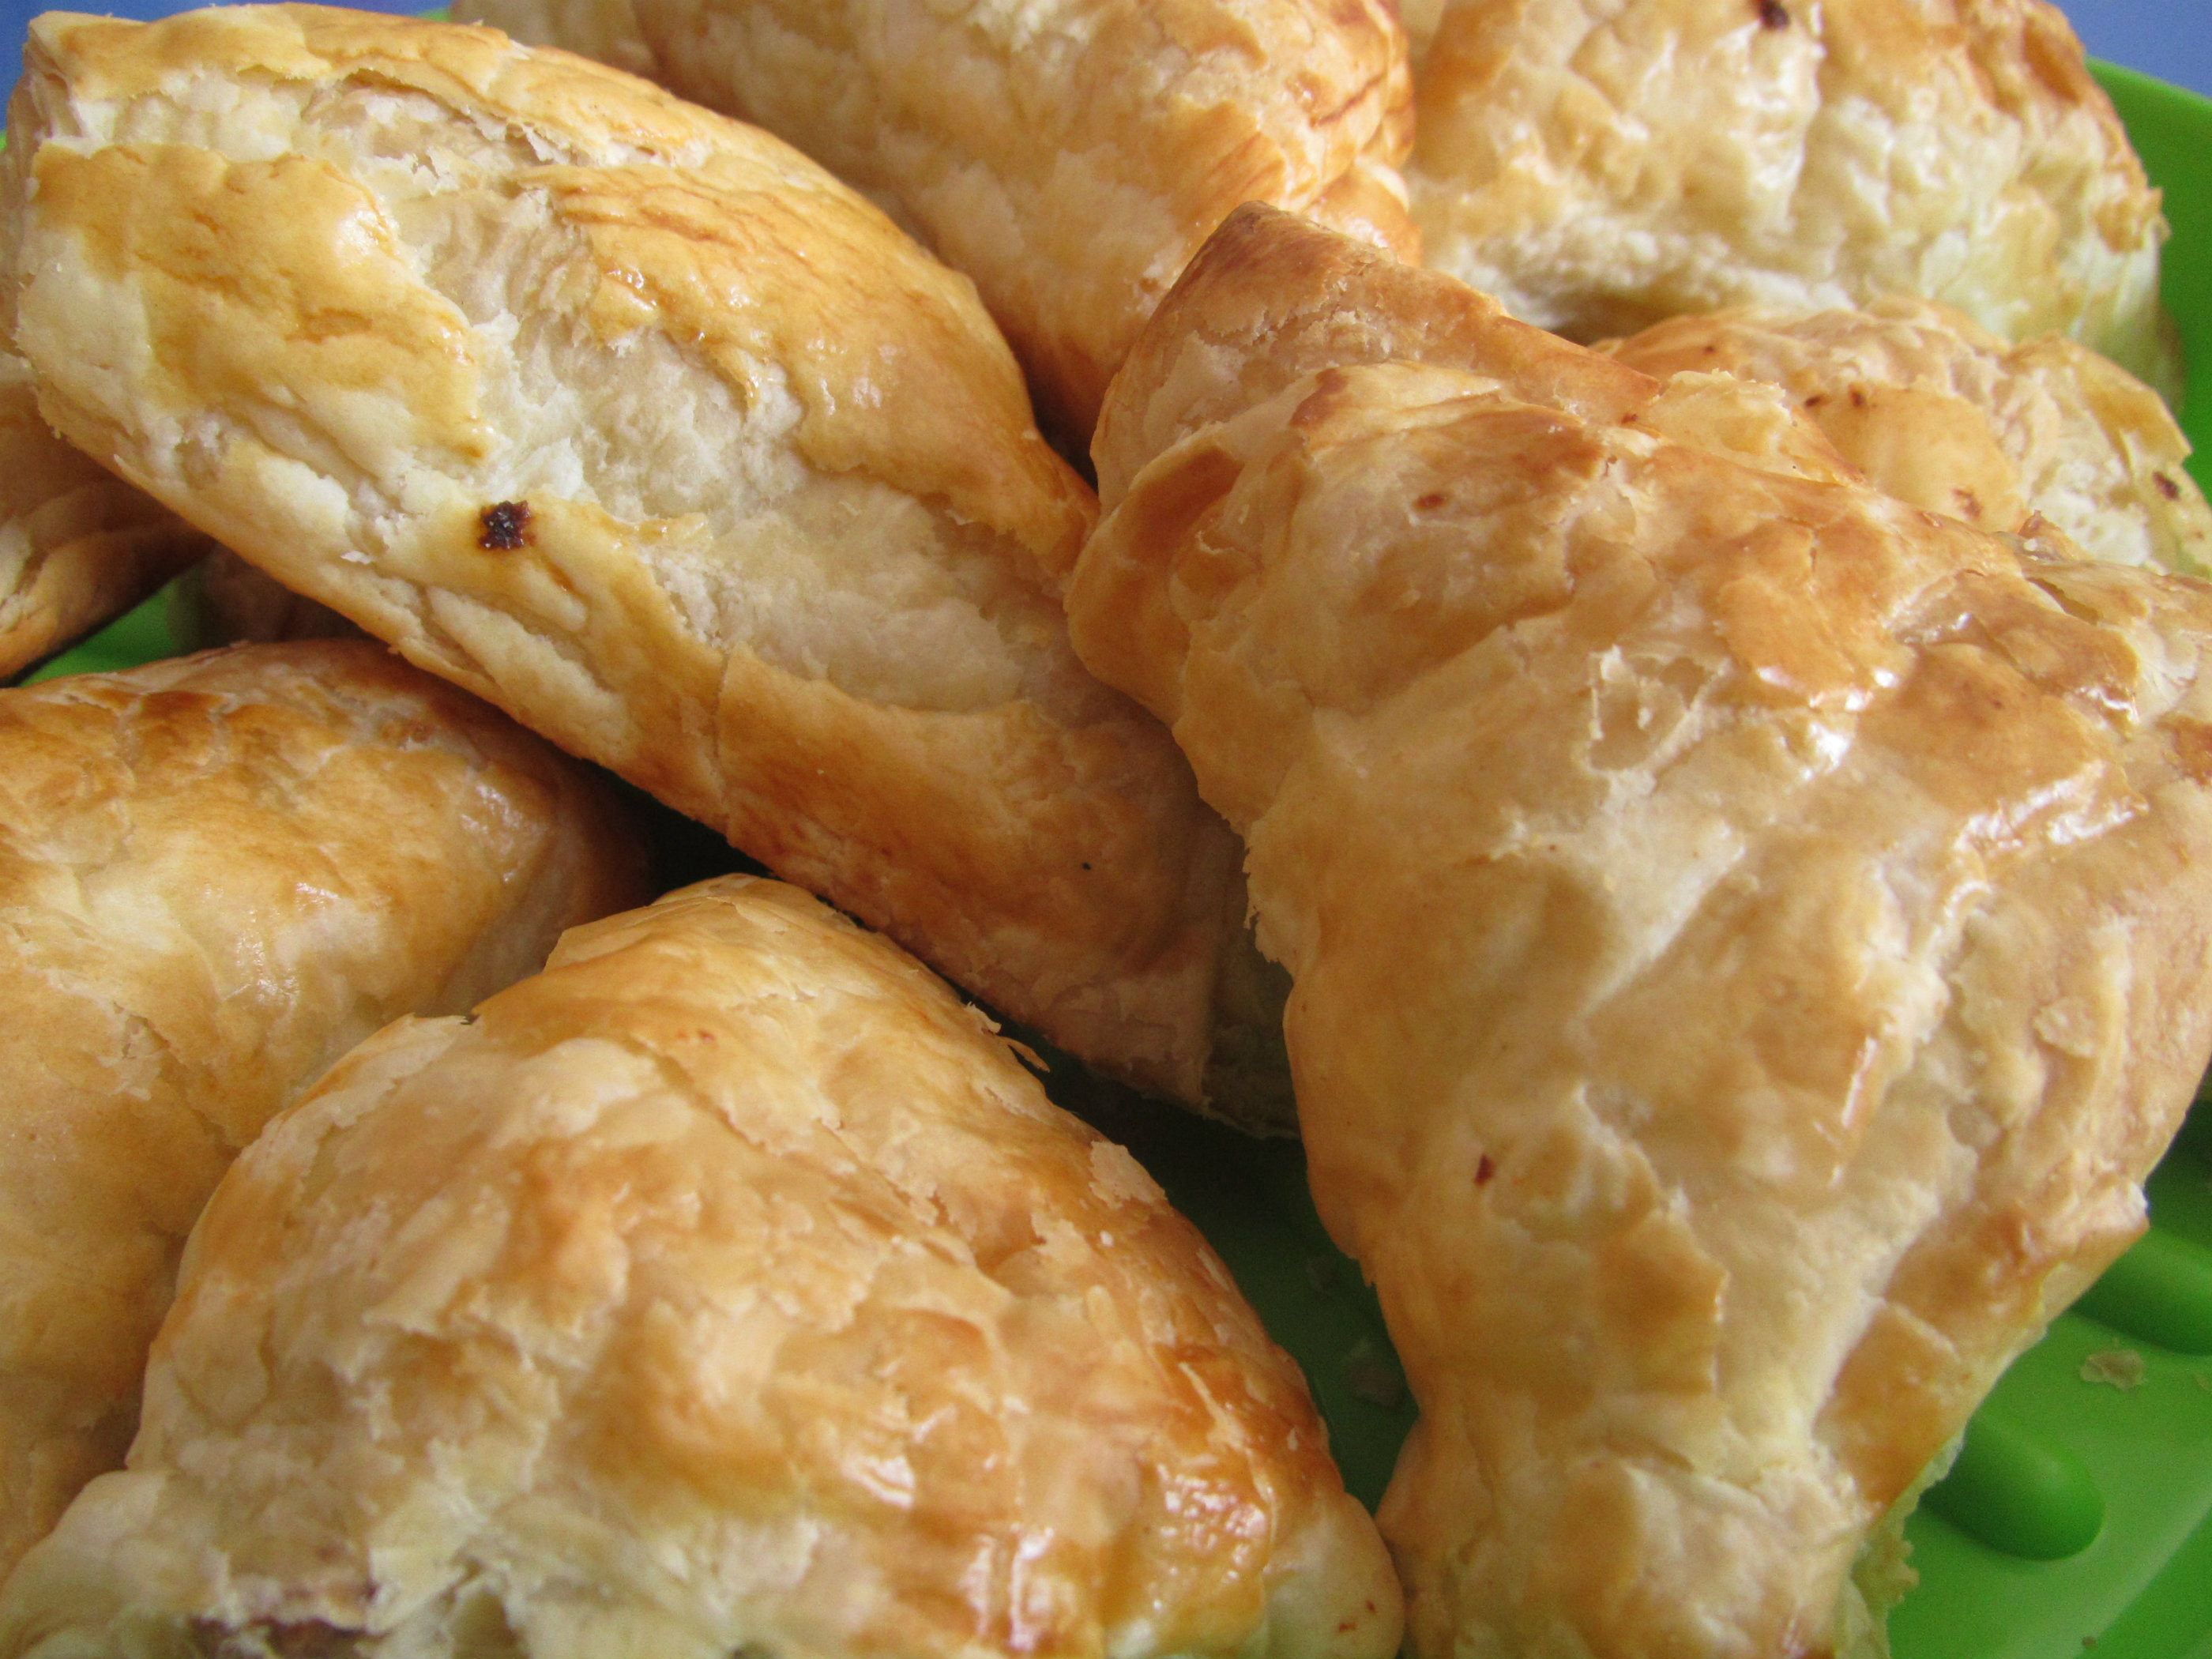 Meat Stuffed Pastries picture